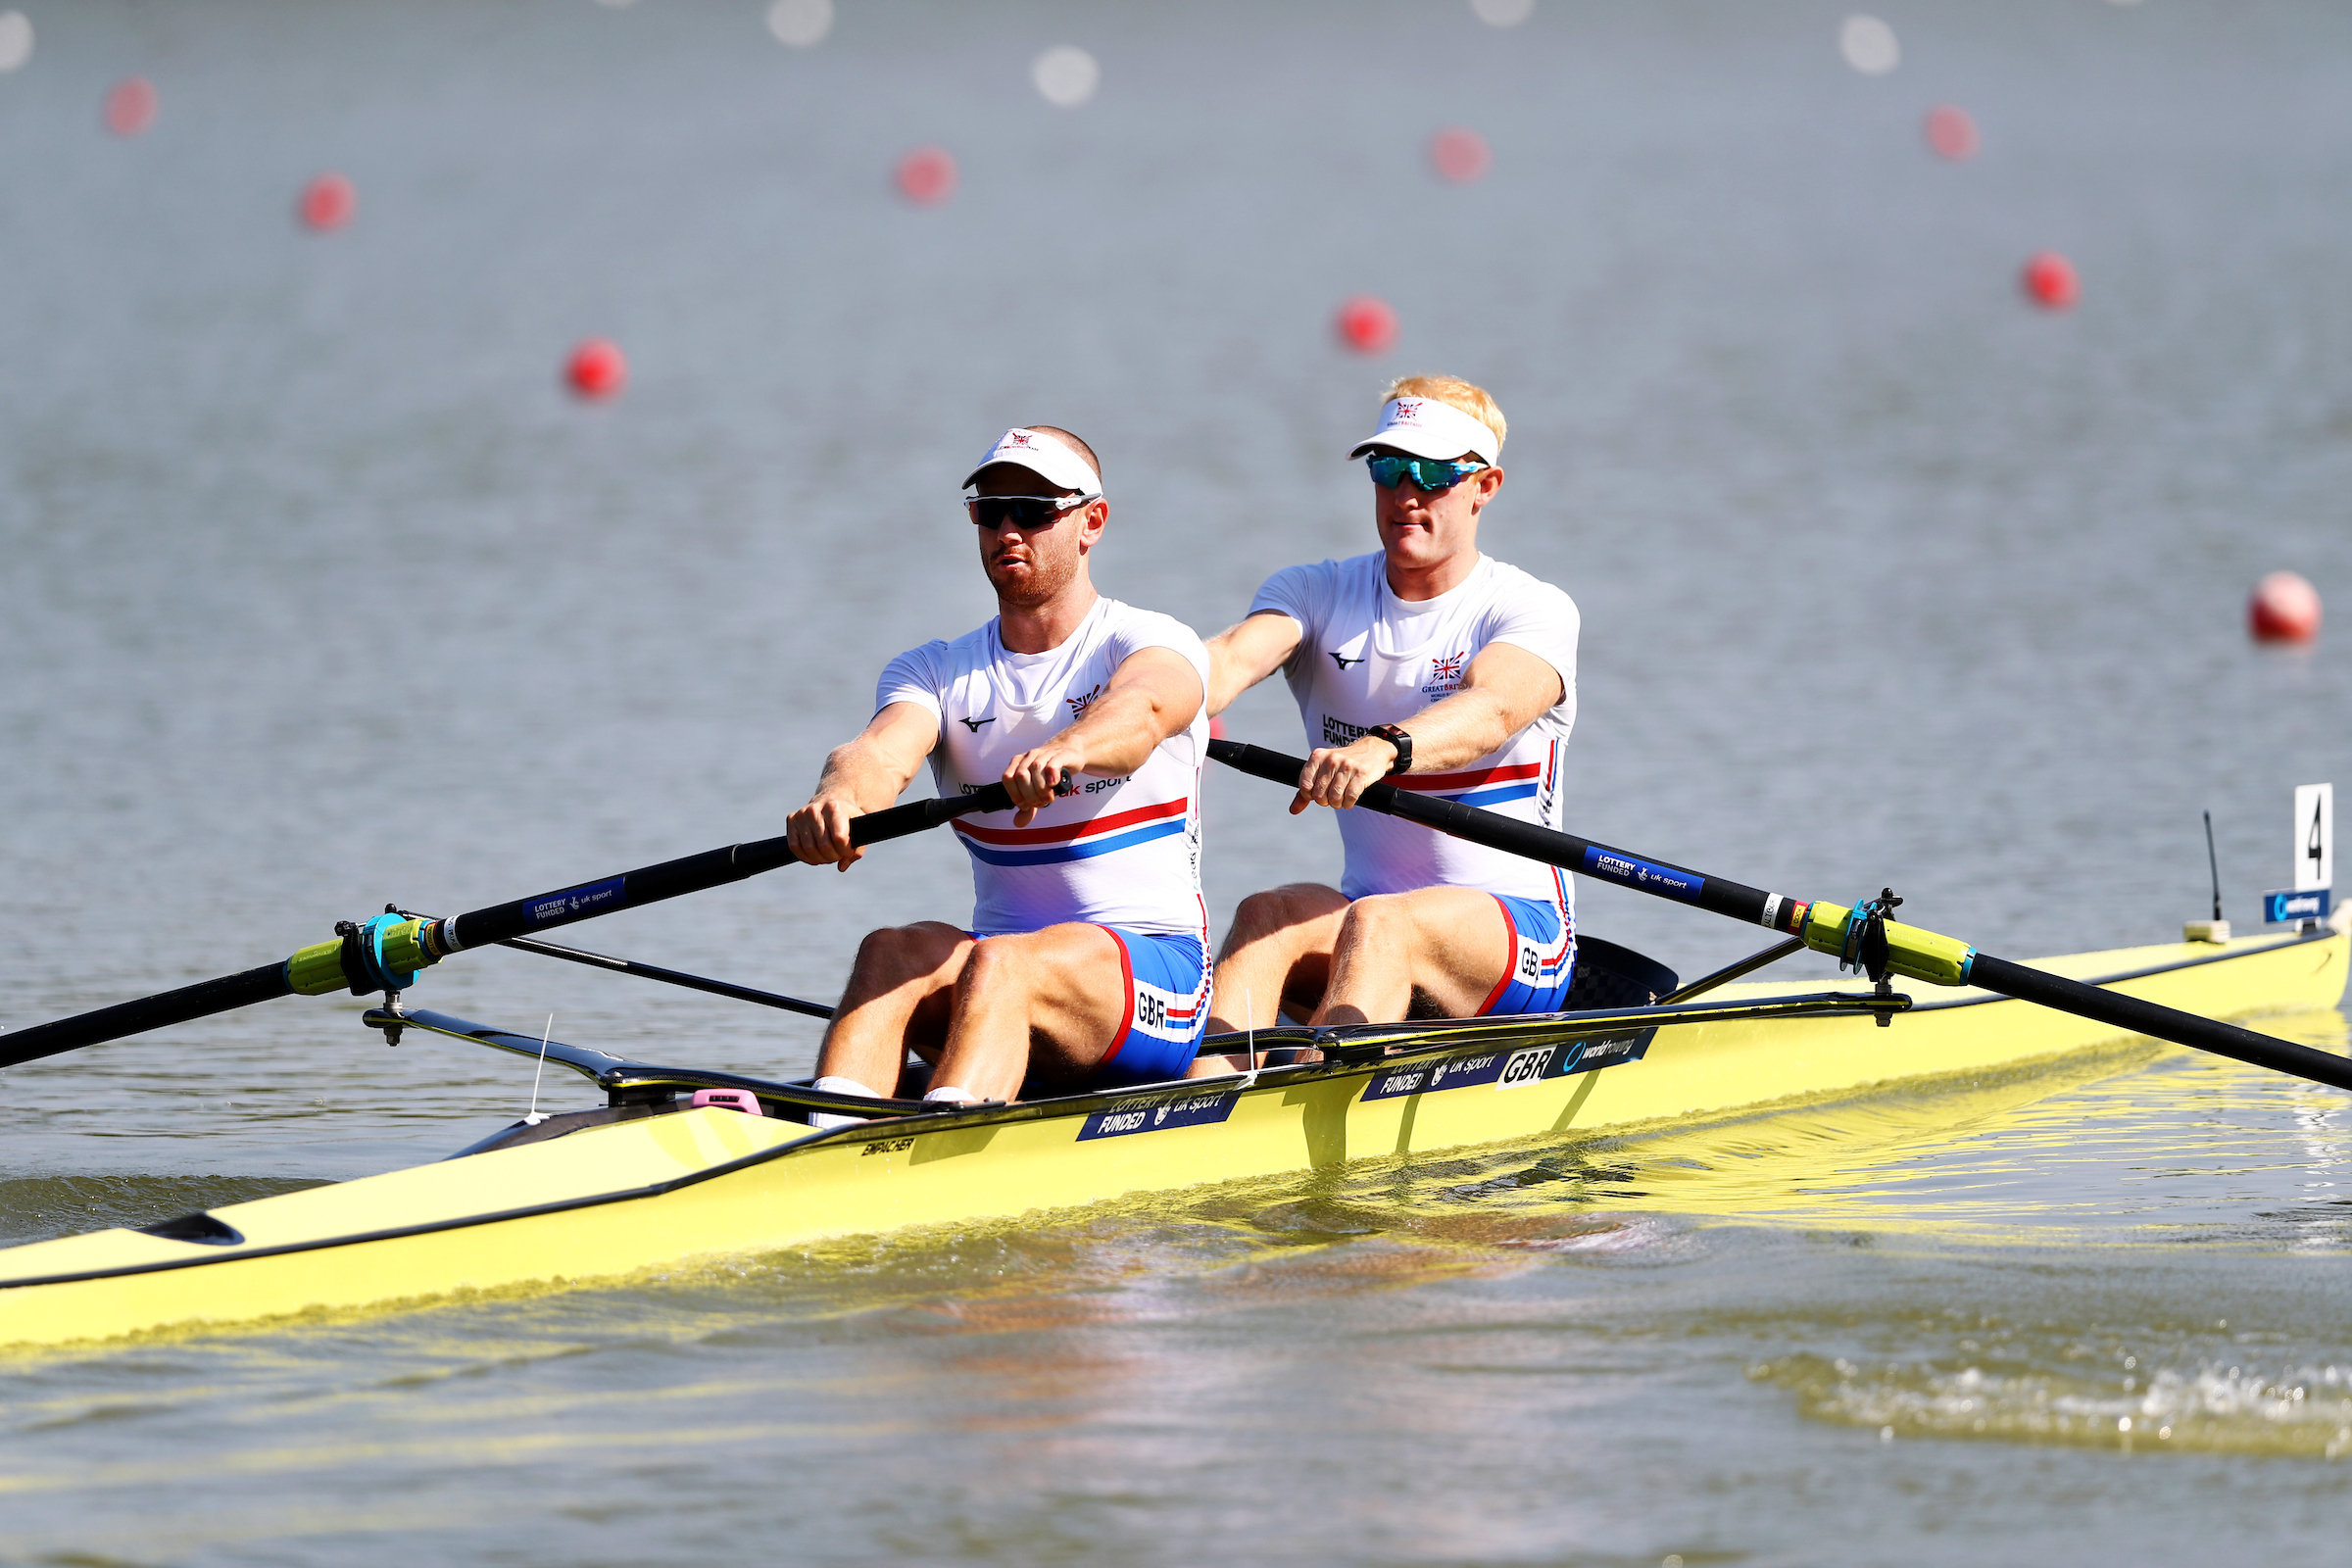 Abingdon's Matt Rossiter (left) and Ollie Cook at the start of their heat in the World Championships Picture: Naomi Baker